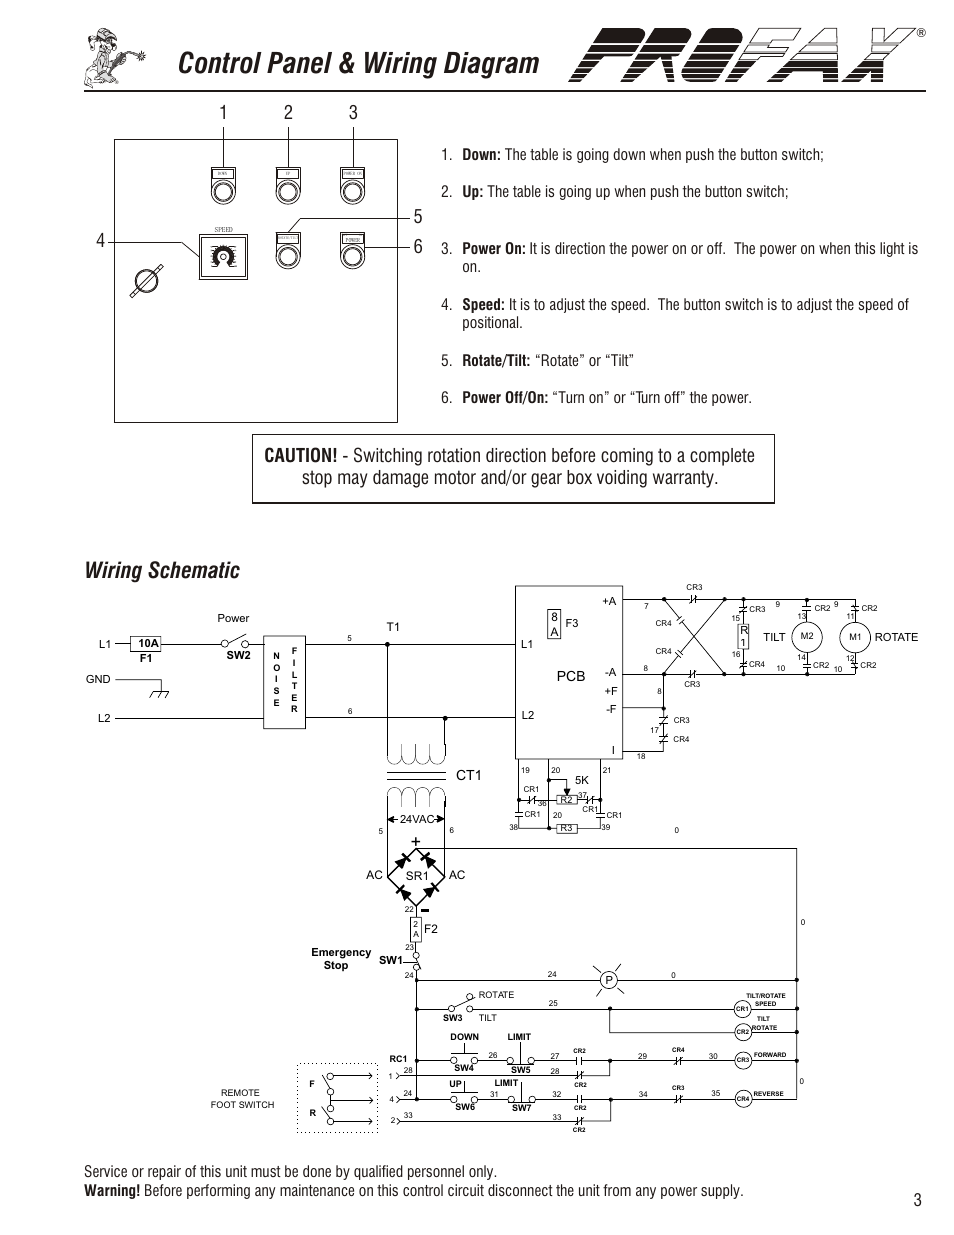 Patch Panel Wiring Question Manual Guide